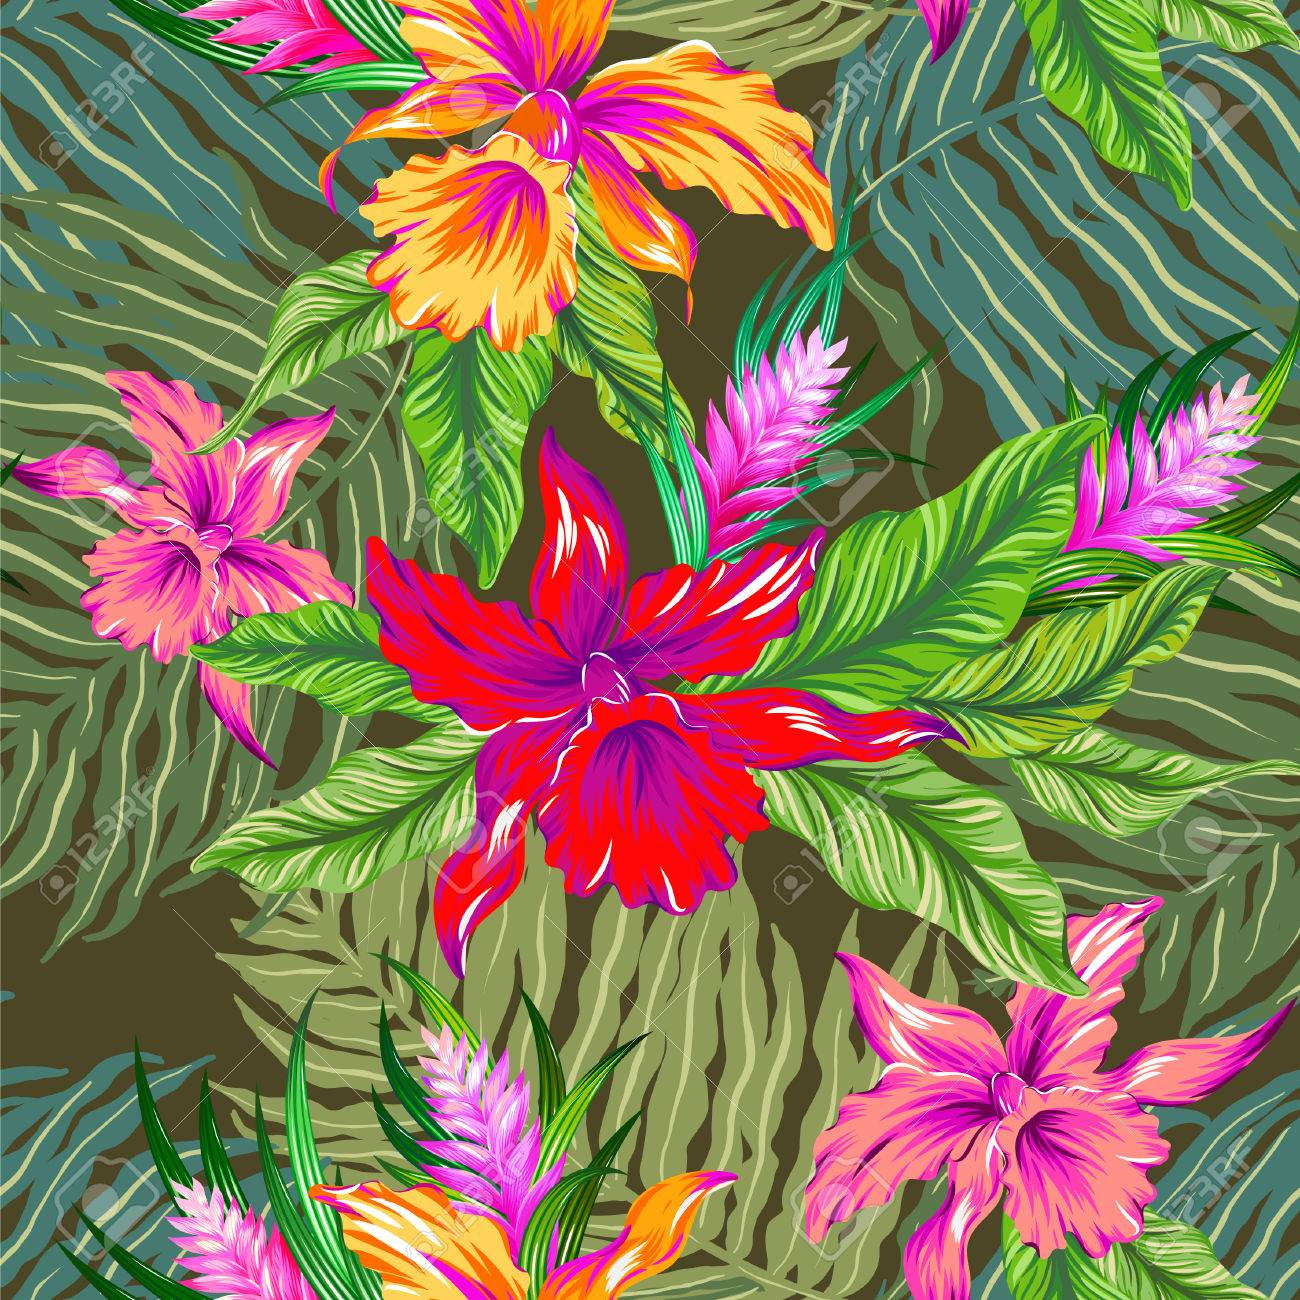 Colorful hawaiian pattern seamless design with exotic flowers colorful hawaiian pattern seamless design with exotic flowers and orchids vintage style illustration izmirmasajfo Images